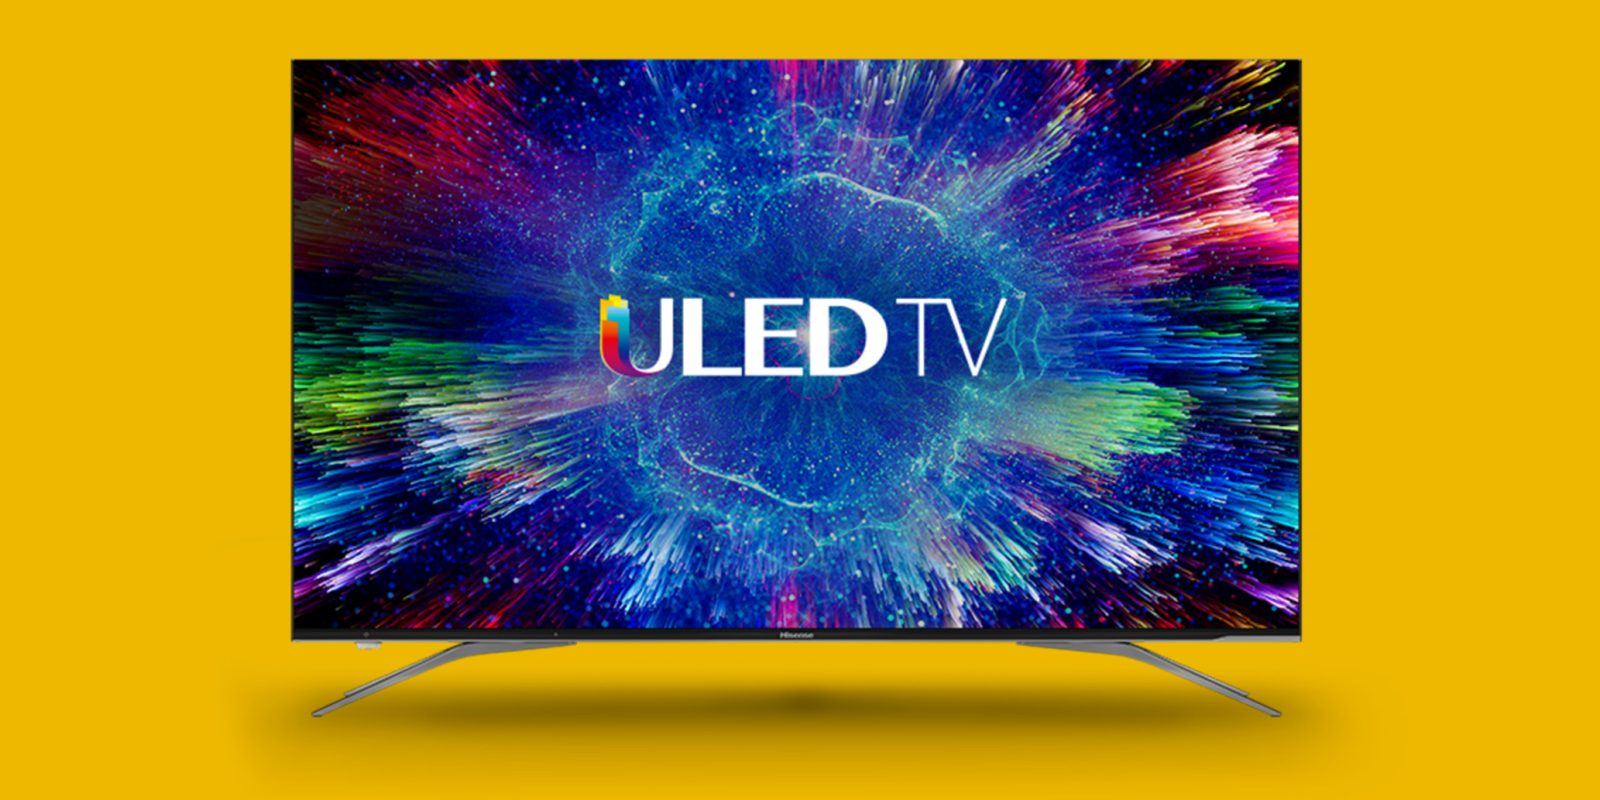 Hisense announces new ULED TVs with Roku and Android TV